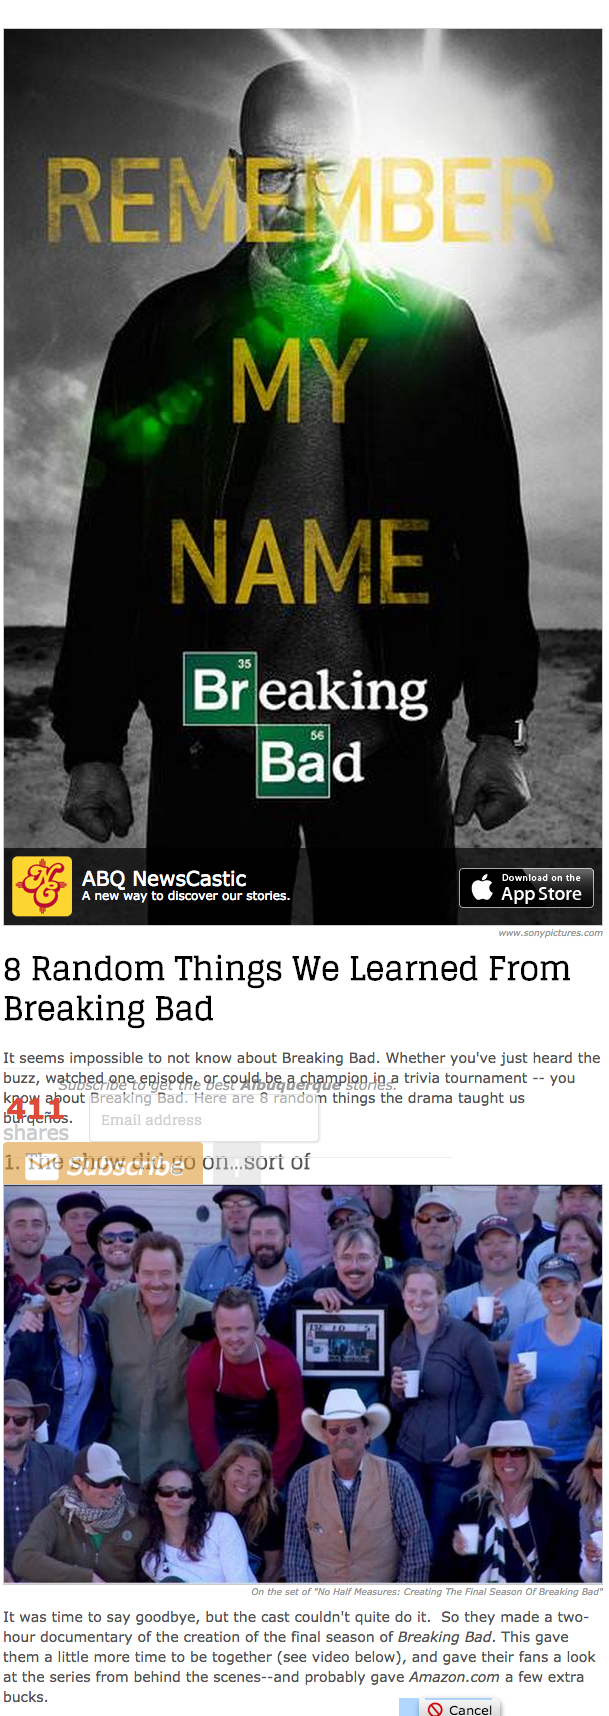 8 Random Things We Learned From Breaking Bad